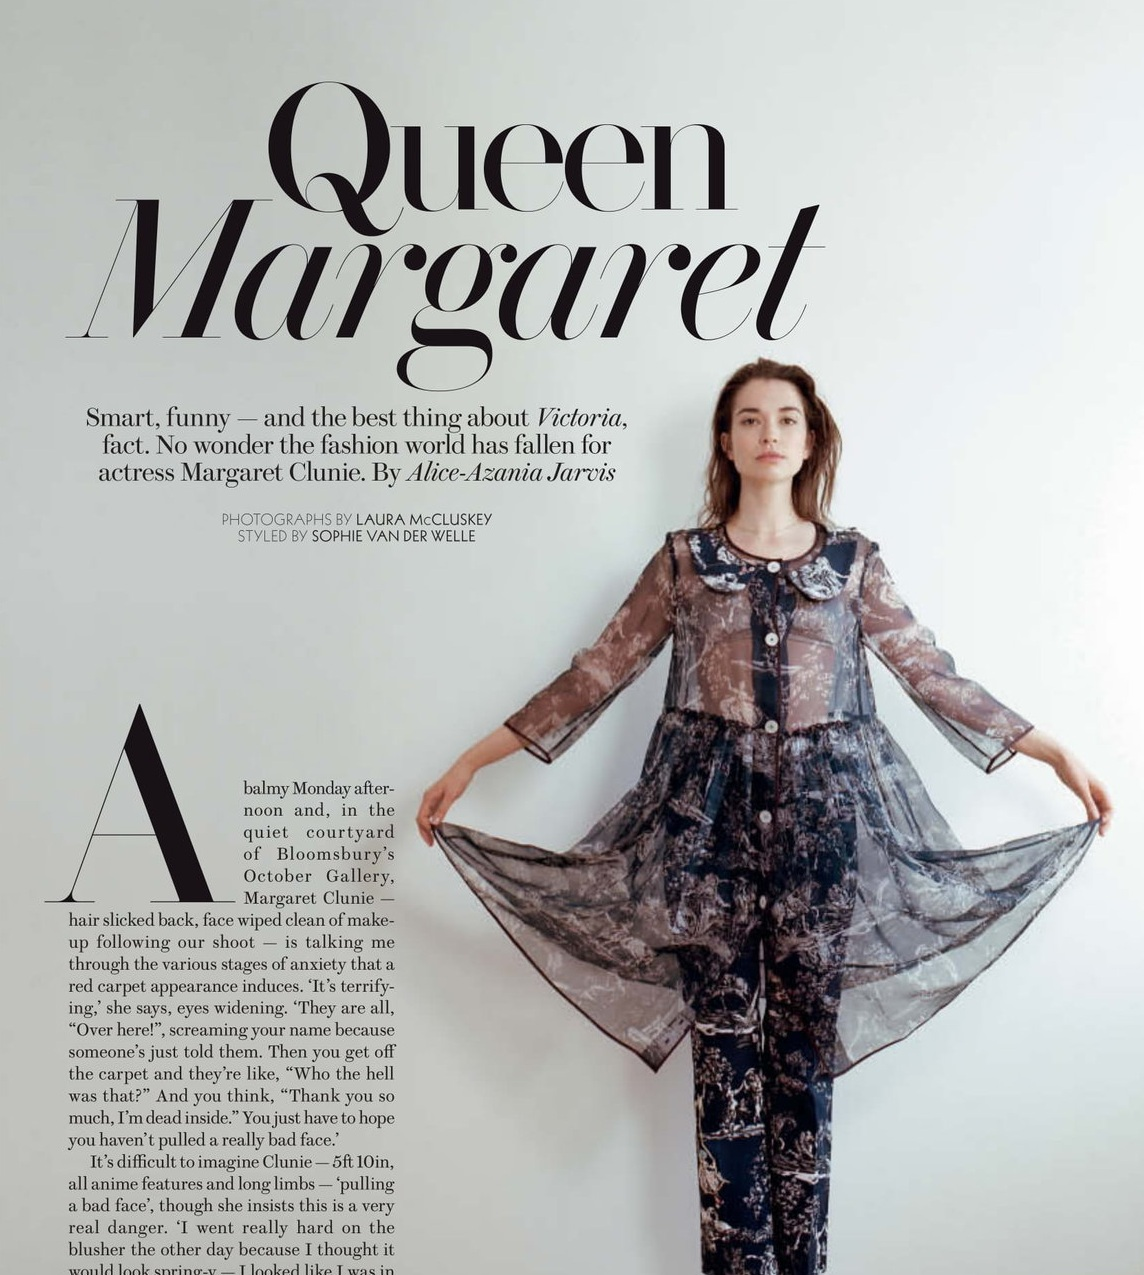 """Queen Margaret - A balmy Monday afternoon and, in the quiet courtyard of Bloomsbury's October Gallery, Margaret Clunie — hair slicked back, face wiped clean of make-up following our shoot — is talking me through the various stages of anxiety that a red carpet appearance induces.'It's terrifying,' she says, eyes widening. 'They are all, """"Over here!"""", screaming your name because someone's just told them. Then you get off the carpet and they're like, """"Who the hell was that?"""" And you think, """"Thank you so much, I'm dead inside…."""" READ MOREPhotography by Laura McCluskey"""